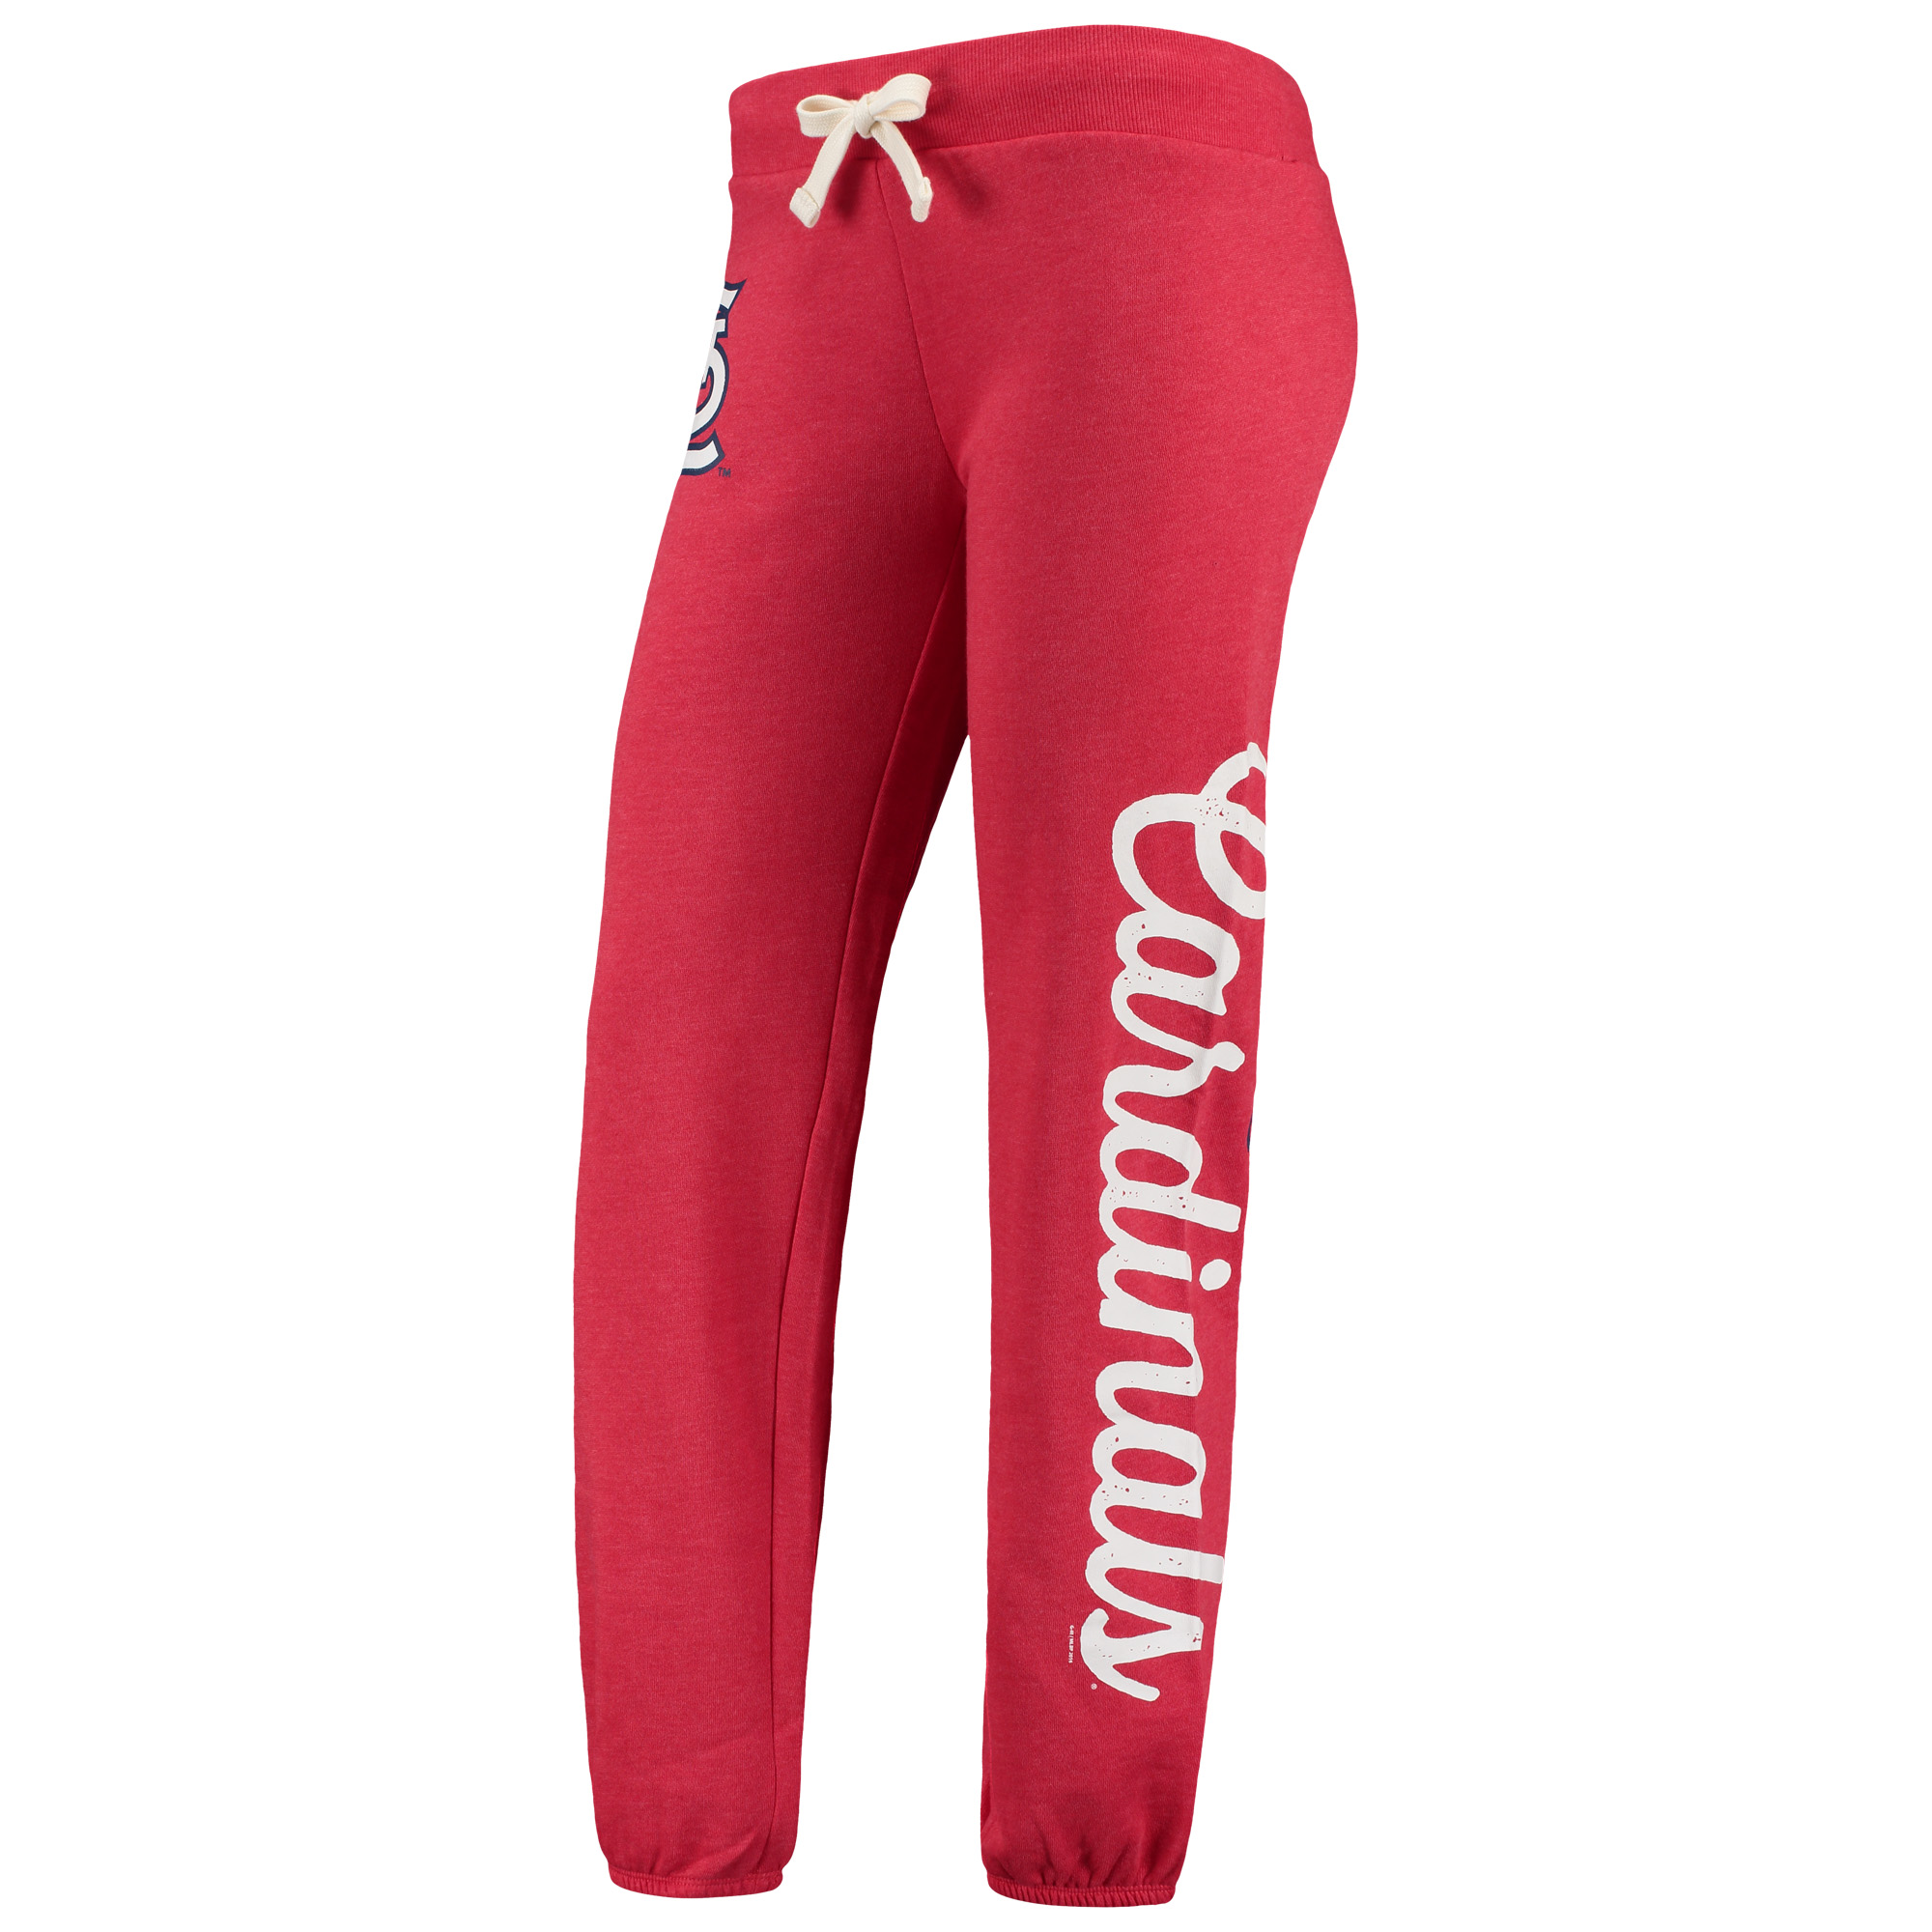 St. Louis Cardinals G-III 4Her by Carl Banks Women's Scrimmage Pants - Red -